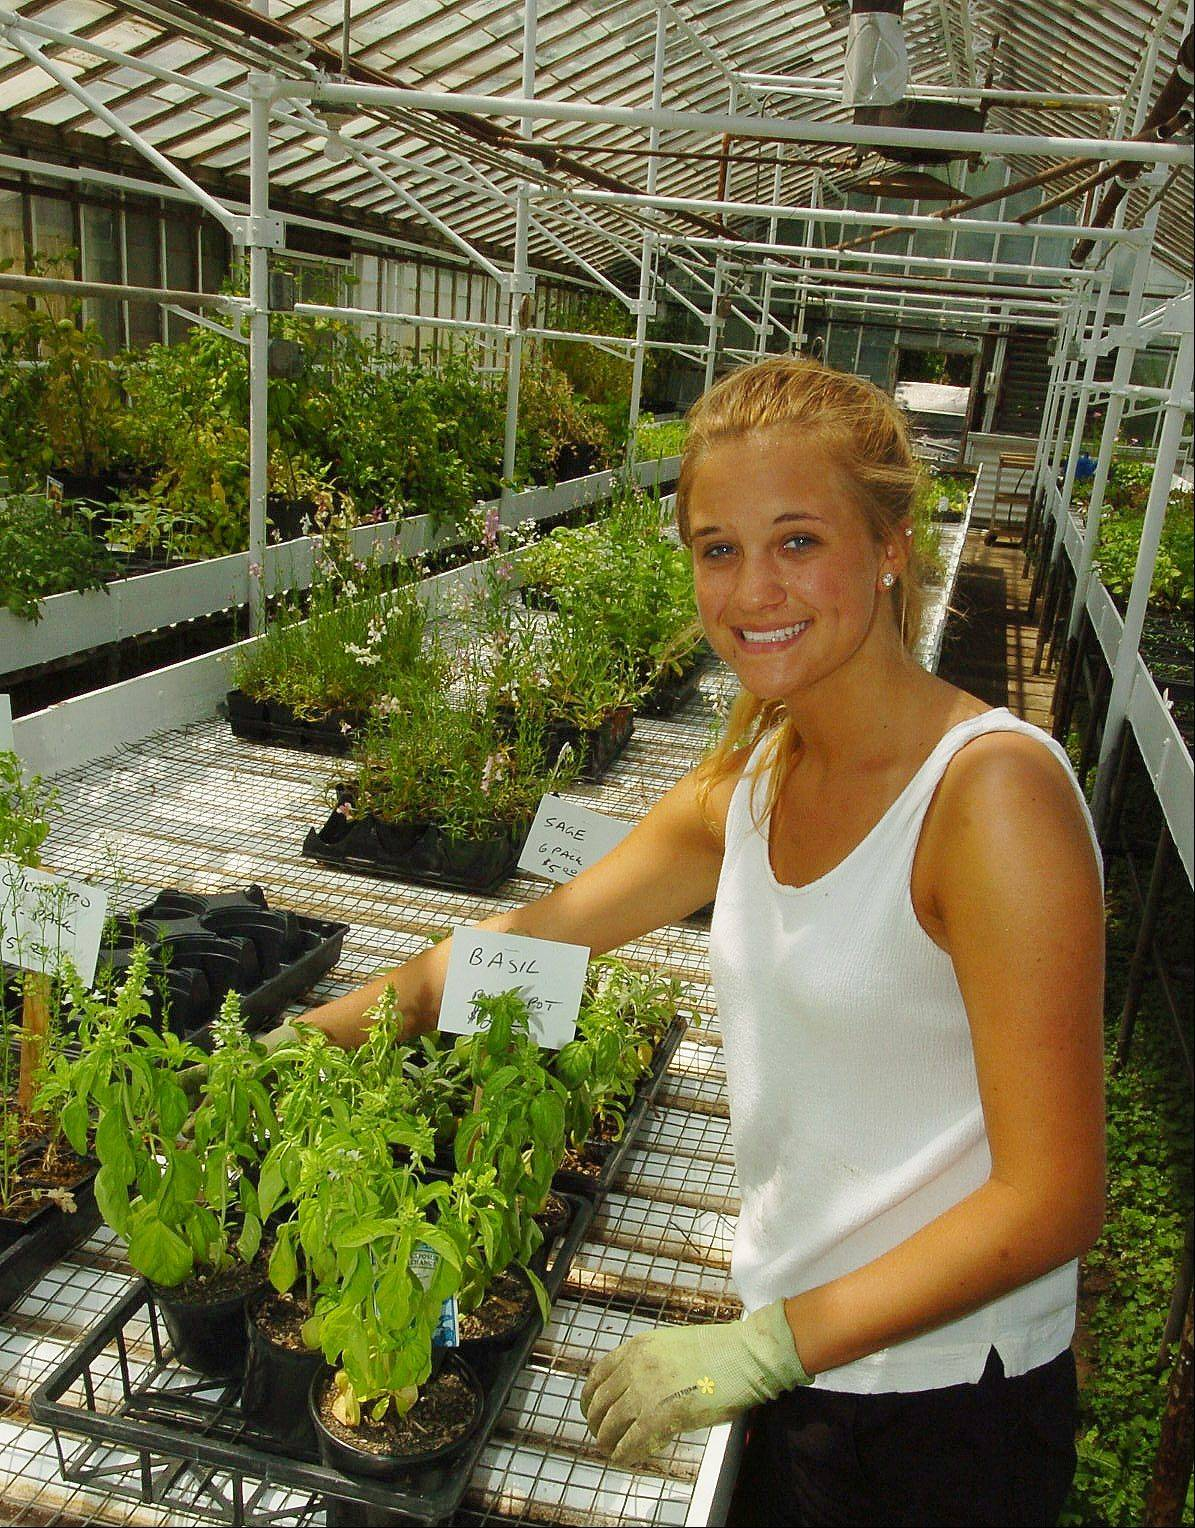 Kirsten Halvorsen tending to basil in the greenhouse at Natural Environments nursery in Hawthorn Woods.